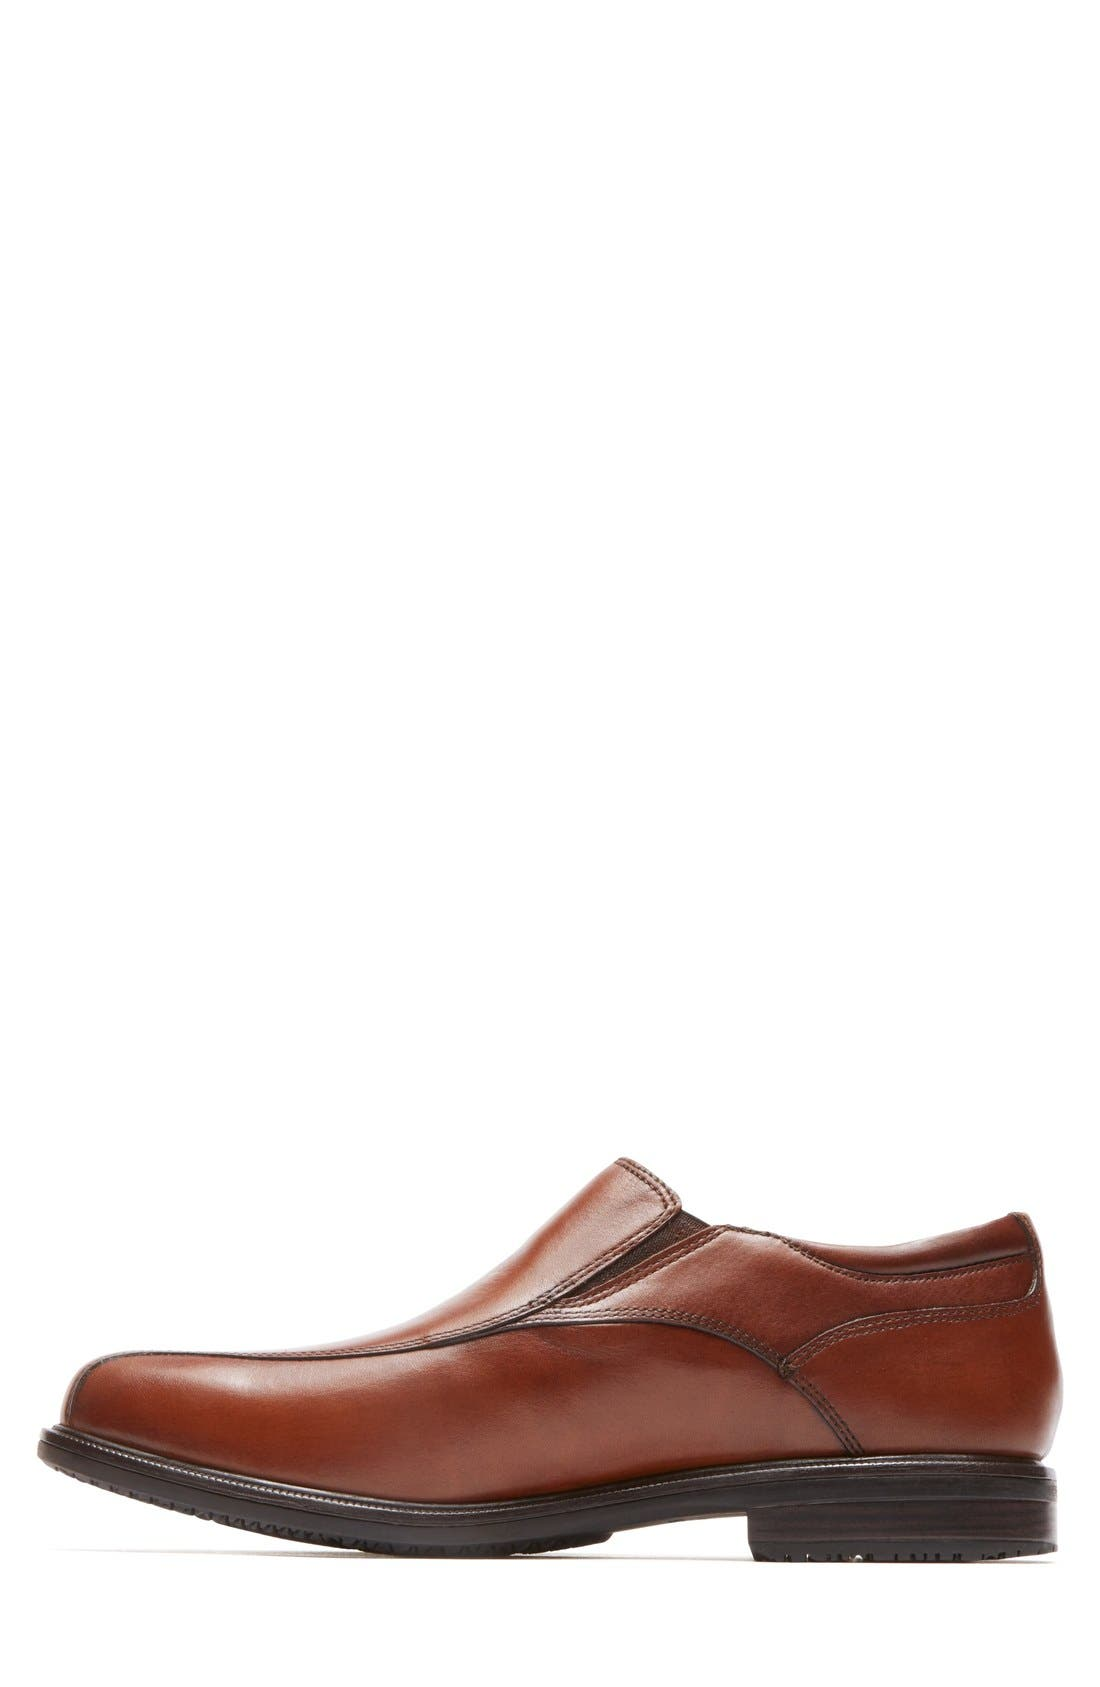 Alternate Image 2  - Rockport Essential Details II Bike Toe Venetian Loafer (Men)